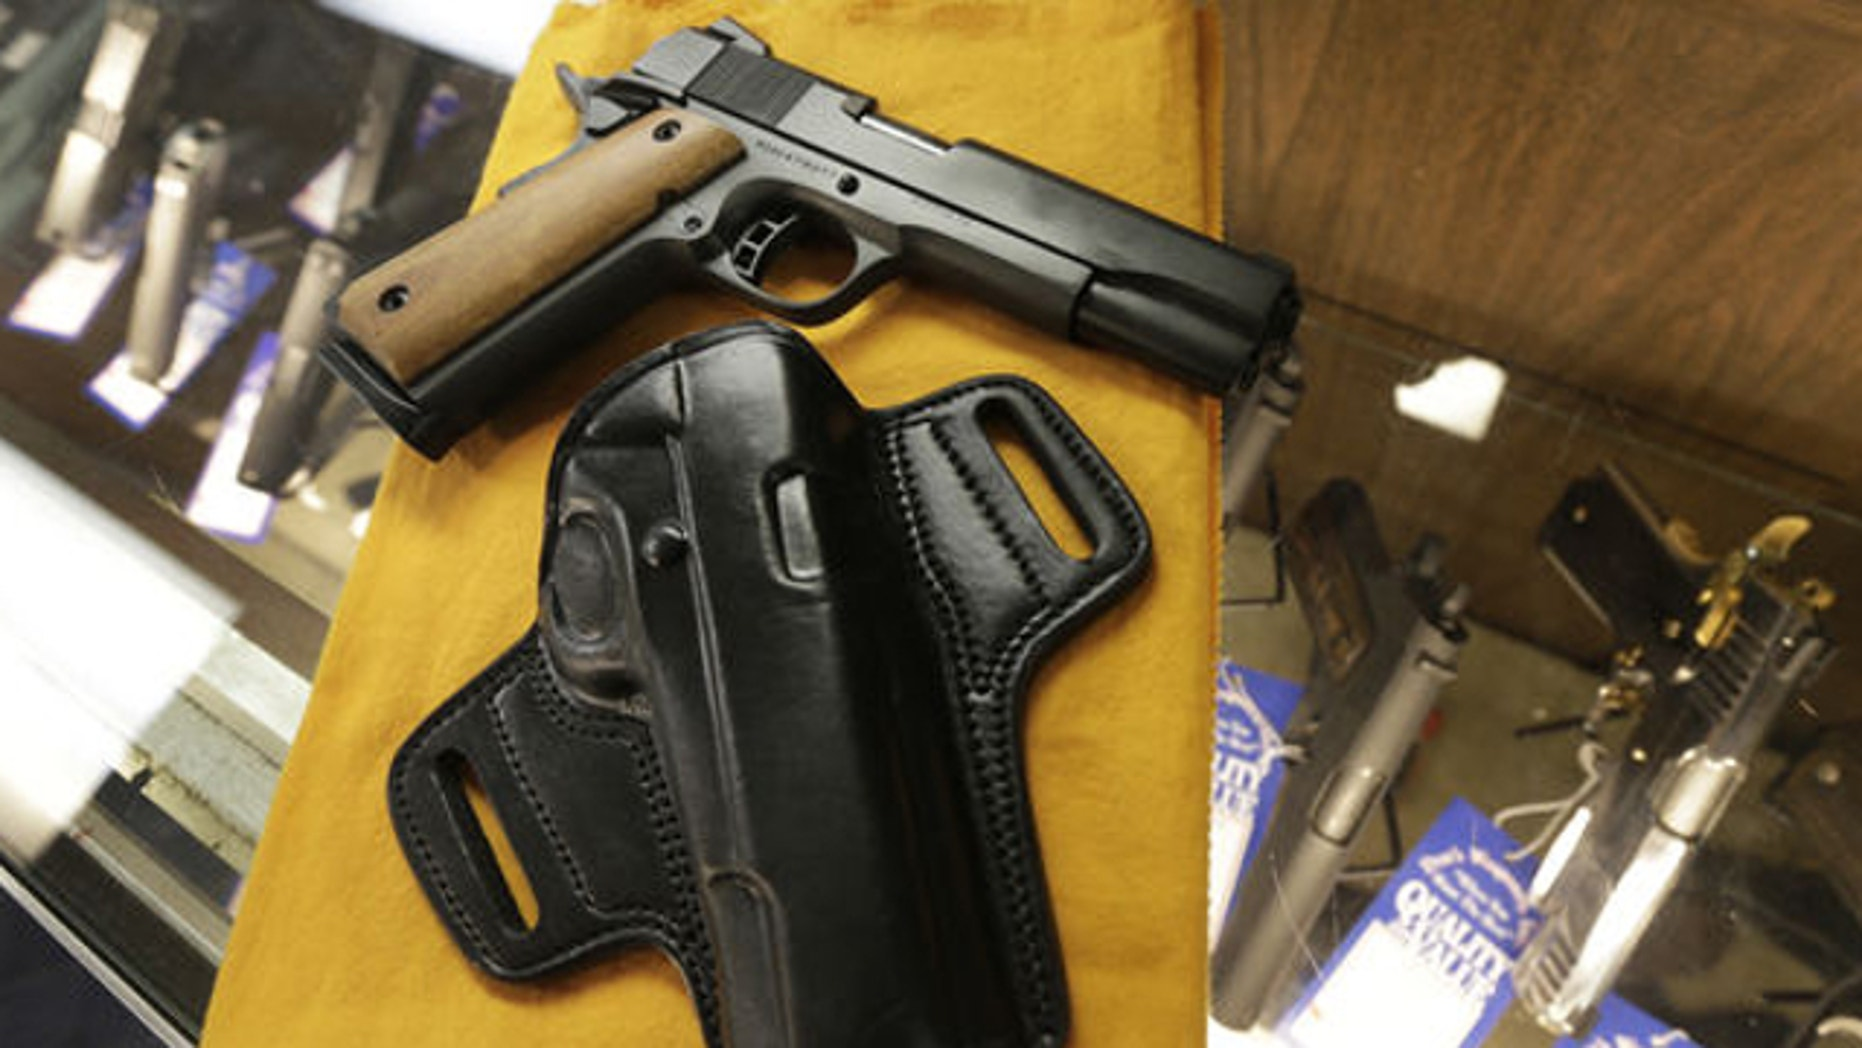 Aug. 24, 2013: A semi-automatic handgun and a holster are displayed at a North Little Rock, Ark., gun shop Thursday, Aug. 22, 2013. A march by by advocates of open carrying of guns is planed for Saturday in Fort Smith, Ark.